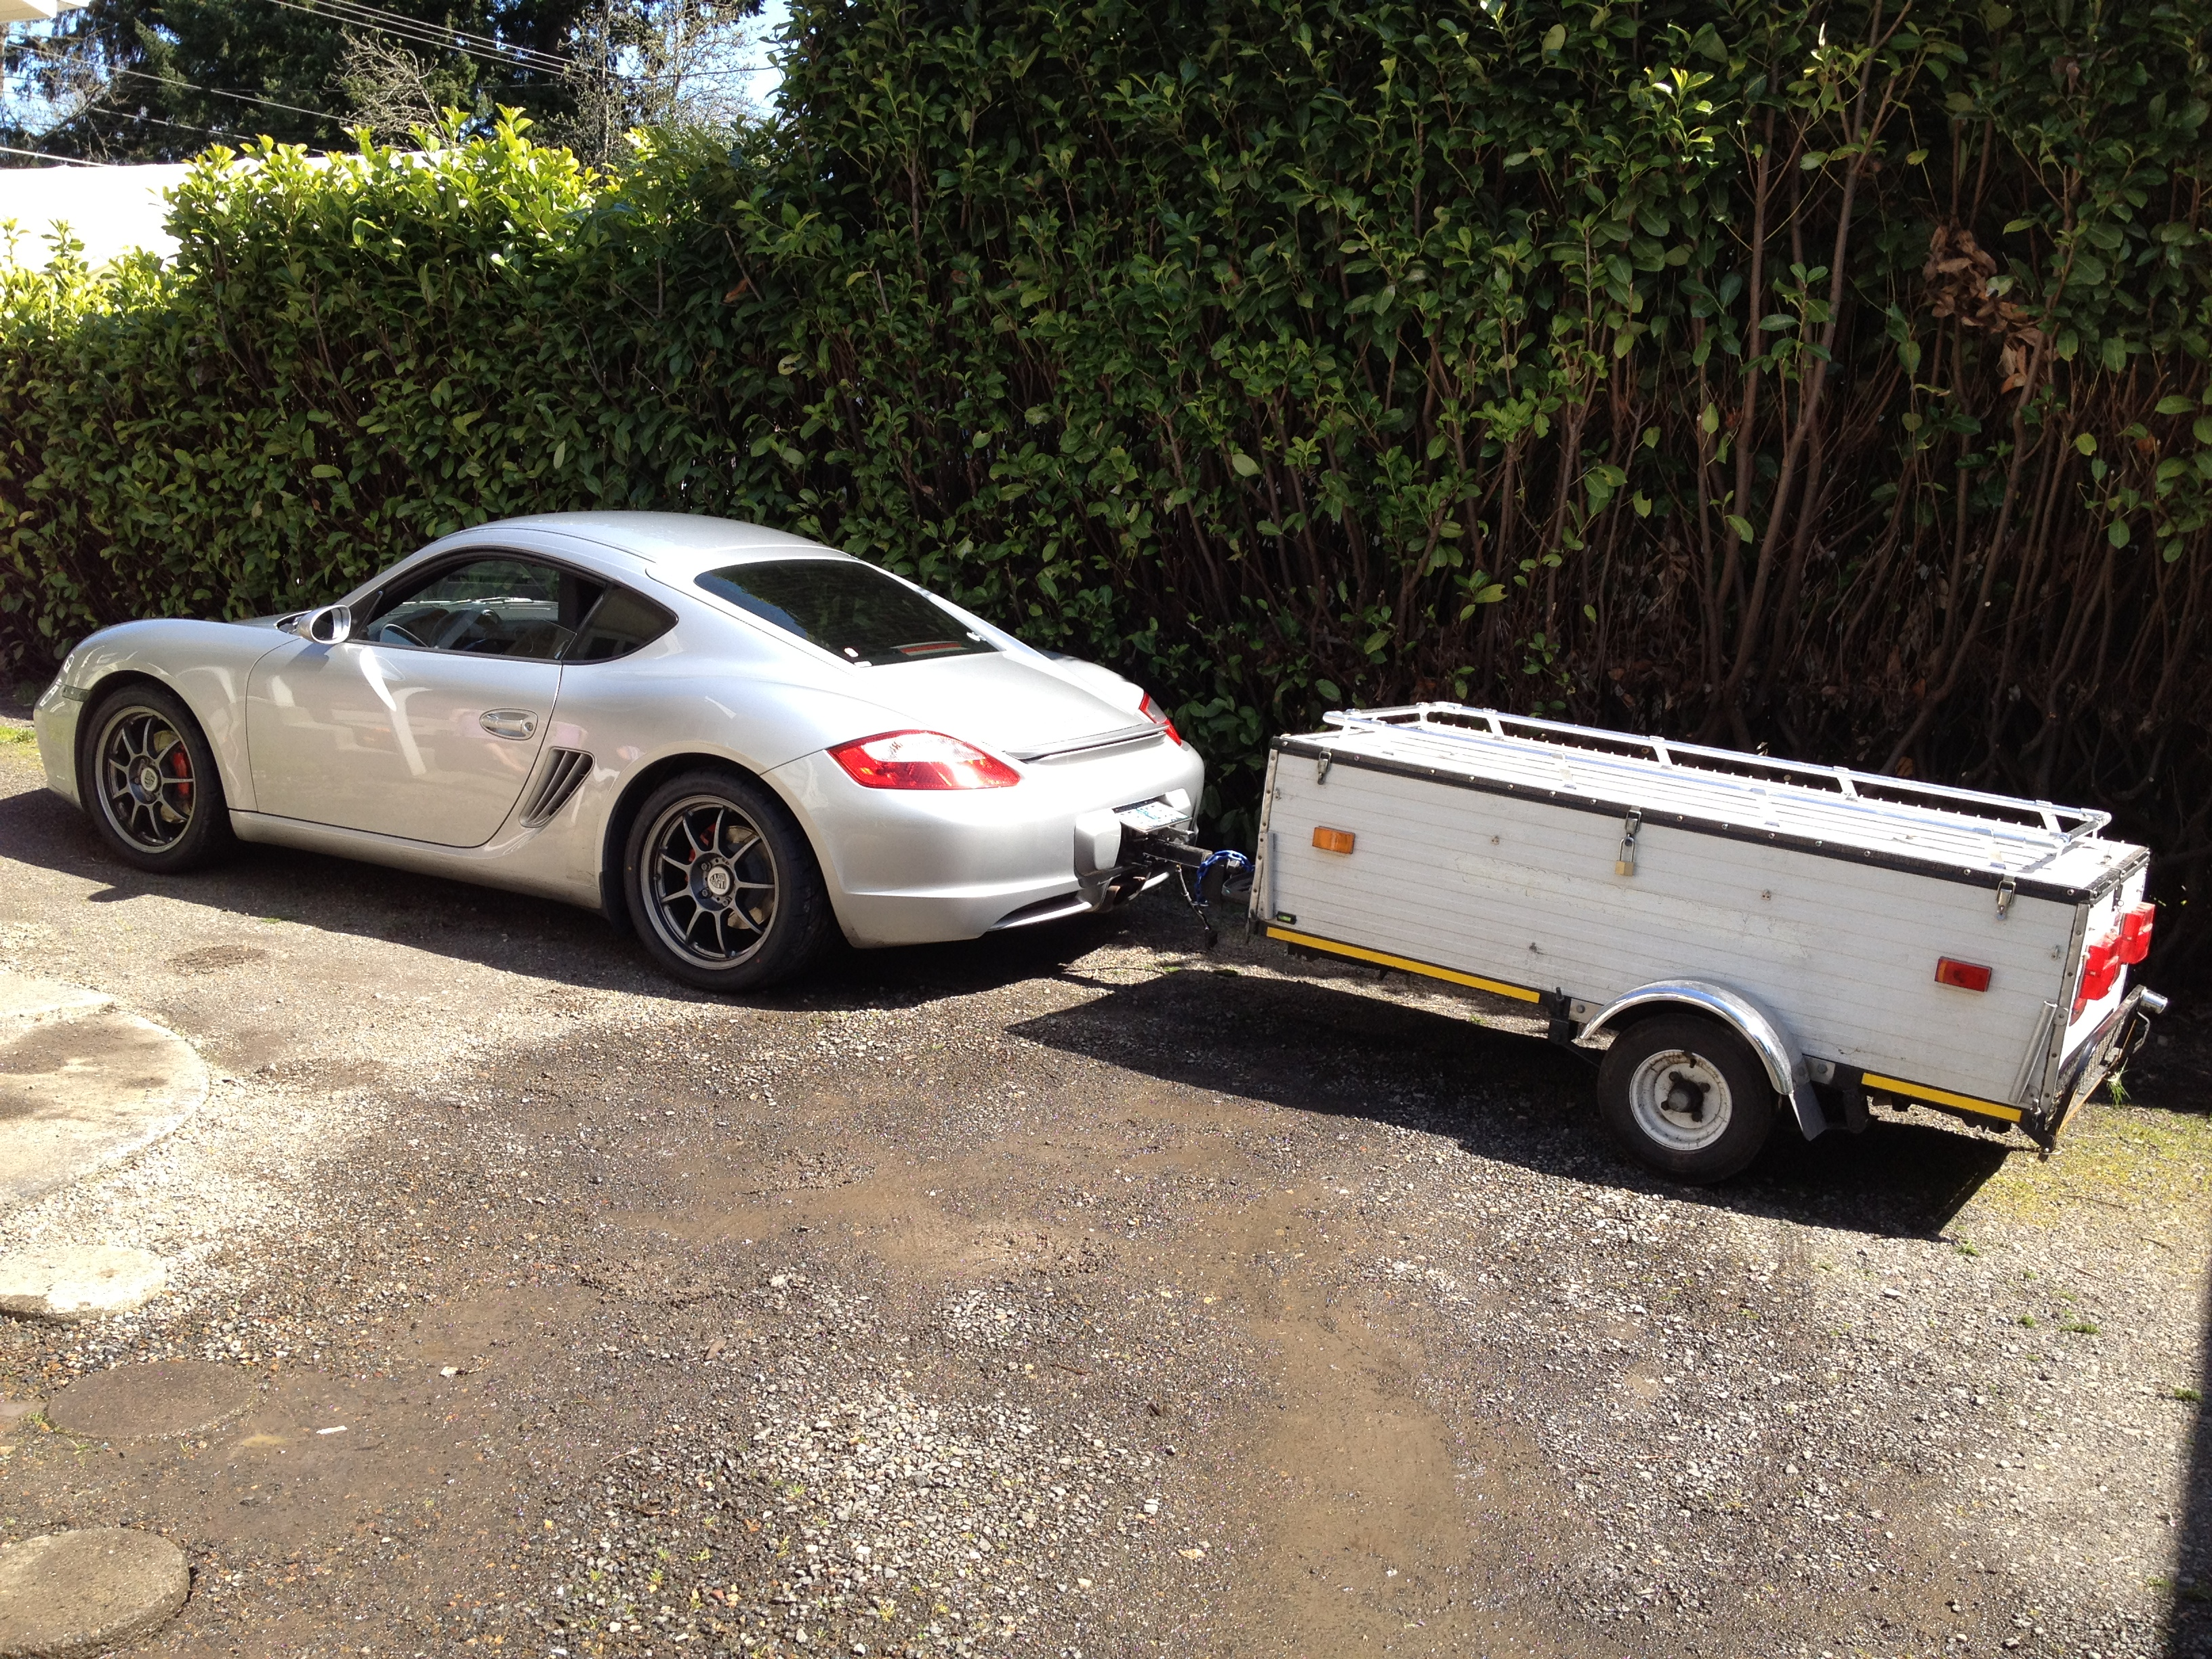 Ever seen a Porsche tow a camping trailer? Well, now you have!